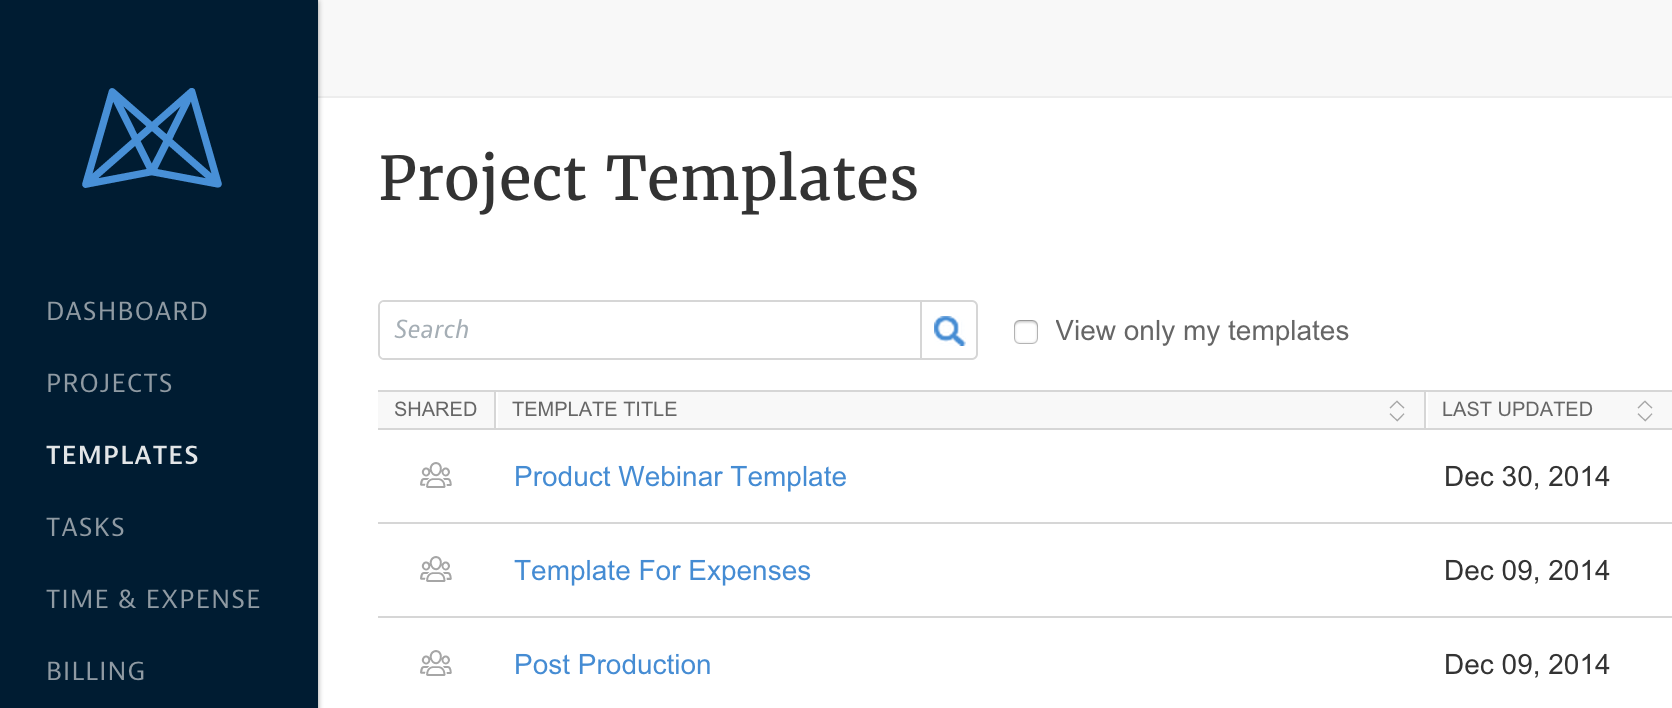 Project Templates Overview  Job Task Template